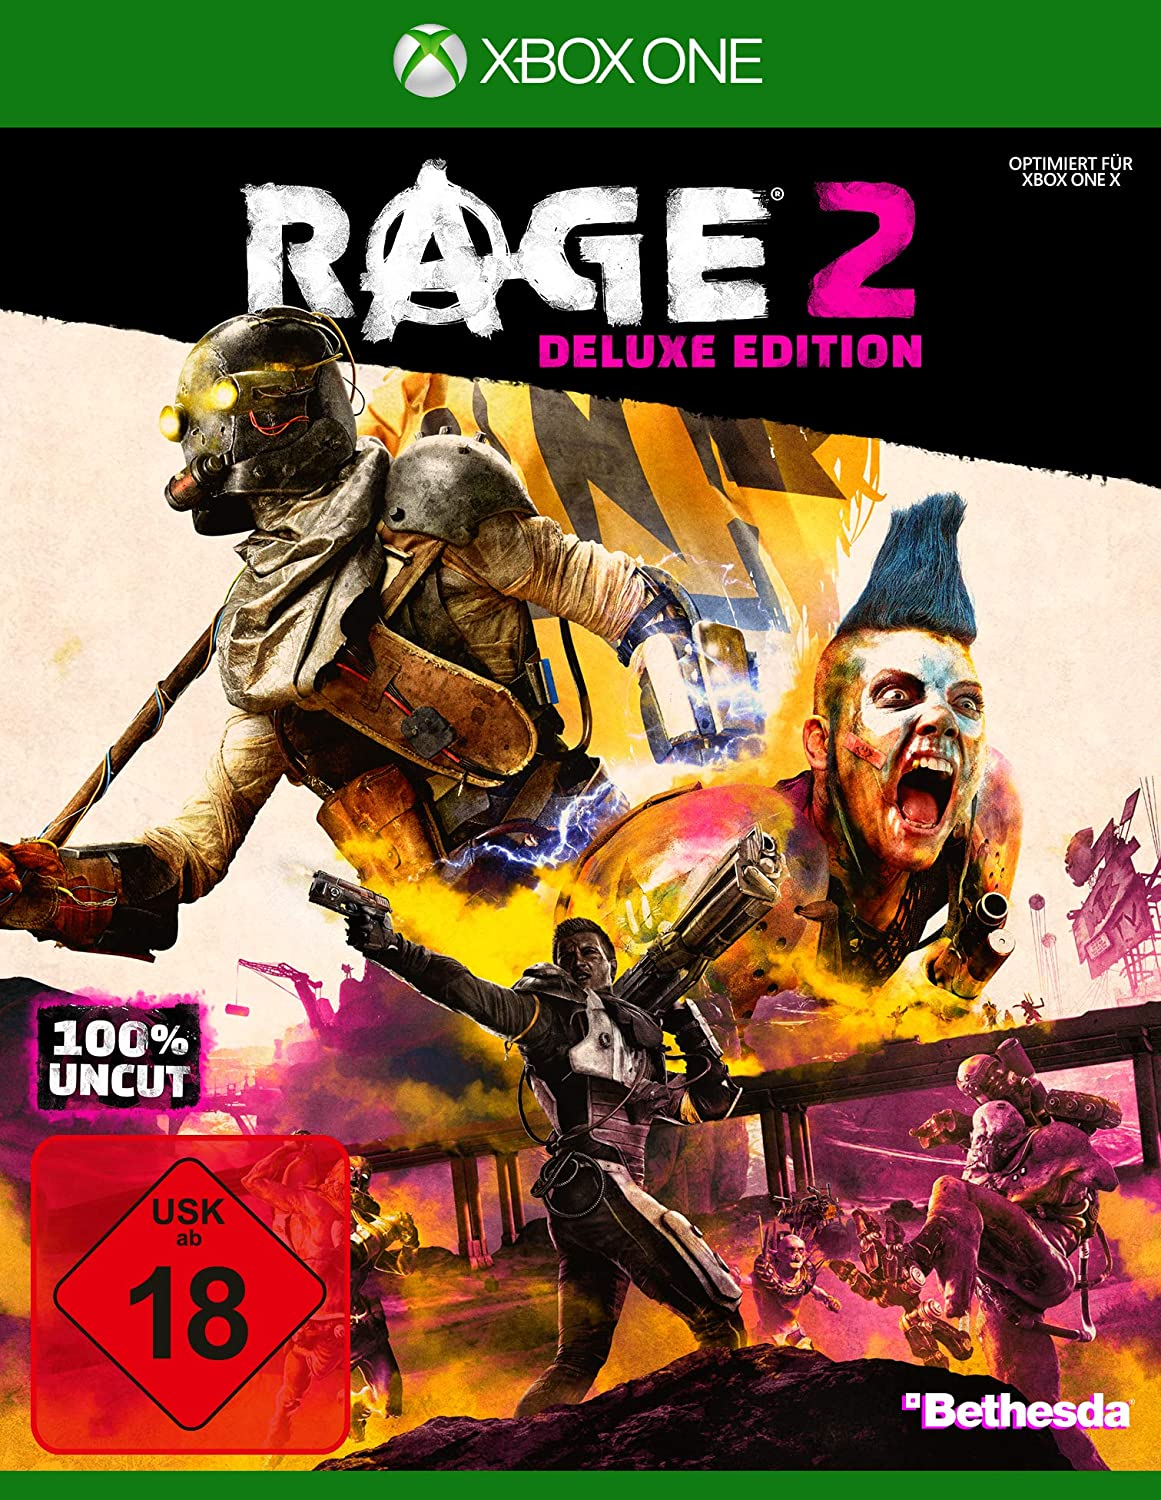 RAGE 2 Deluxe Edition Xbox One